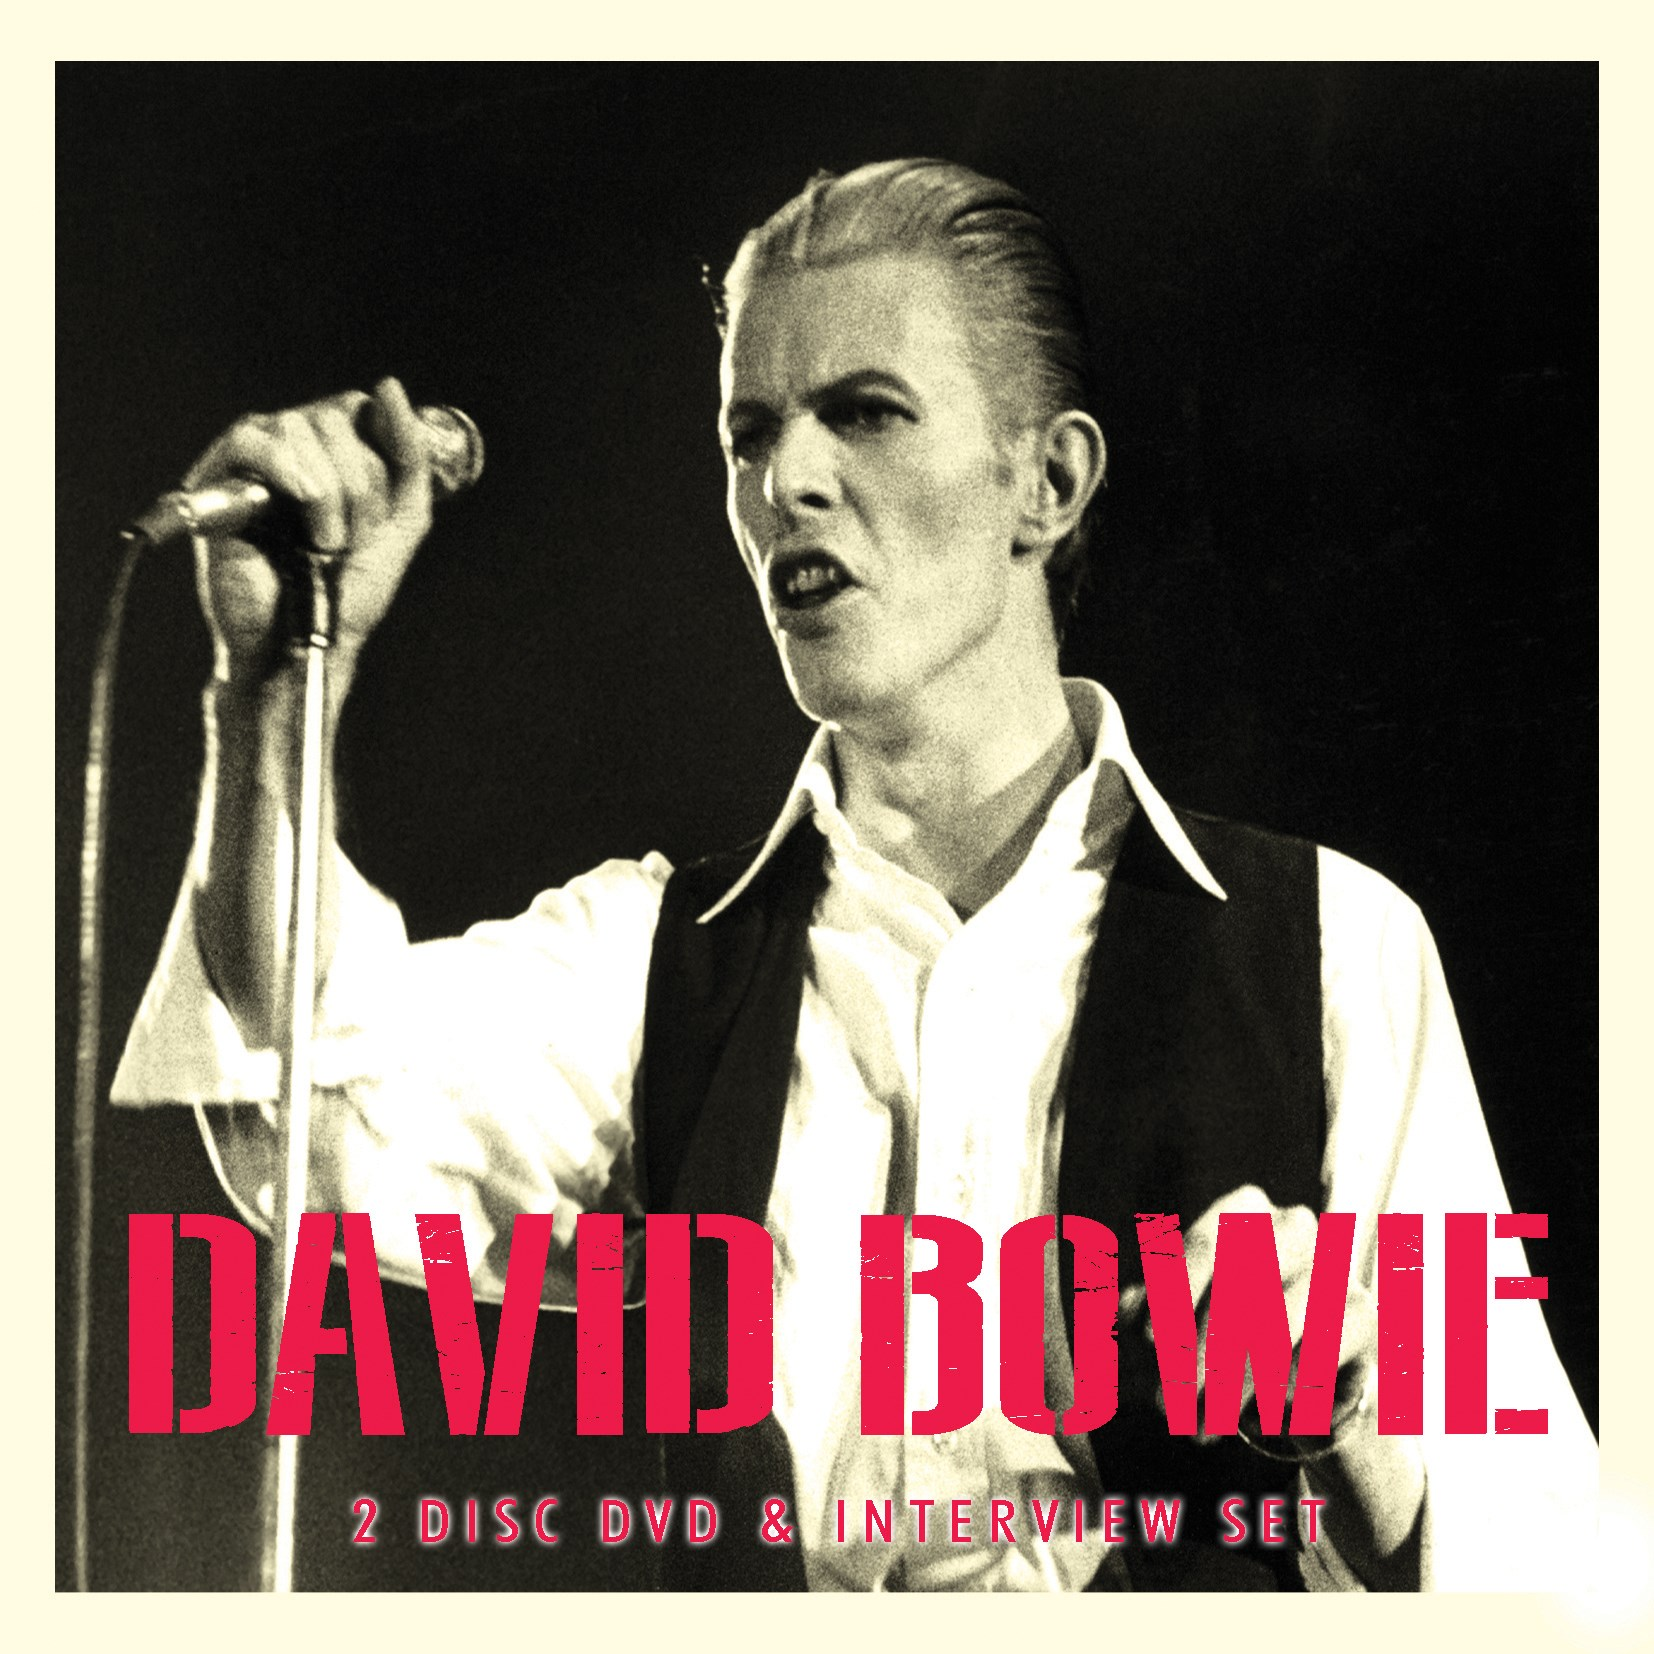 David Bowie: The Document - The Documentary DVD